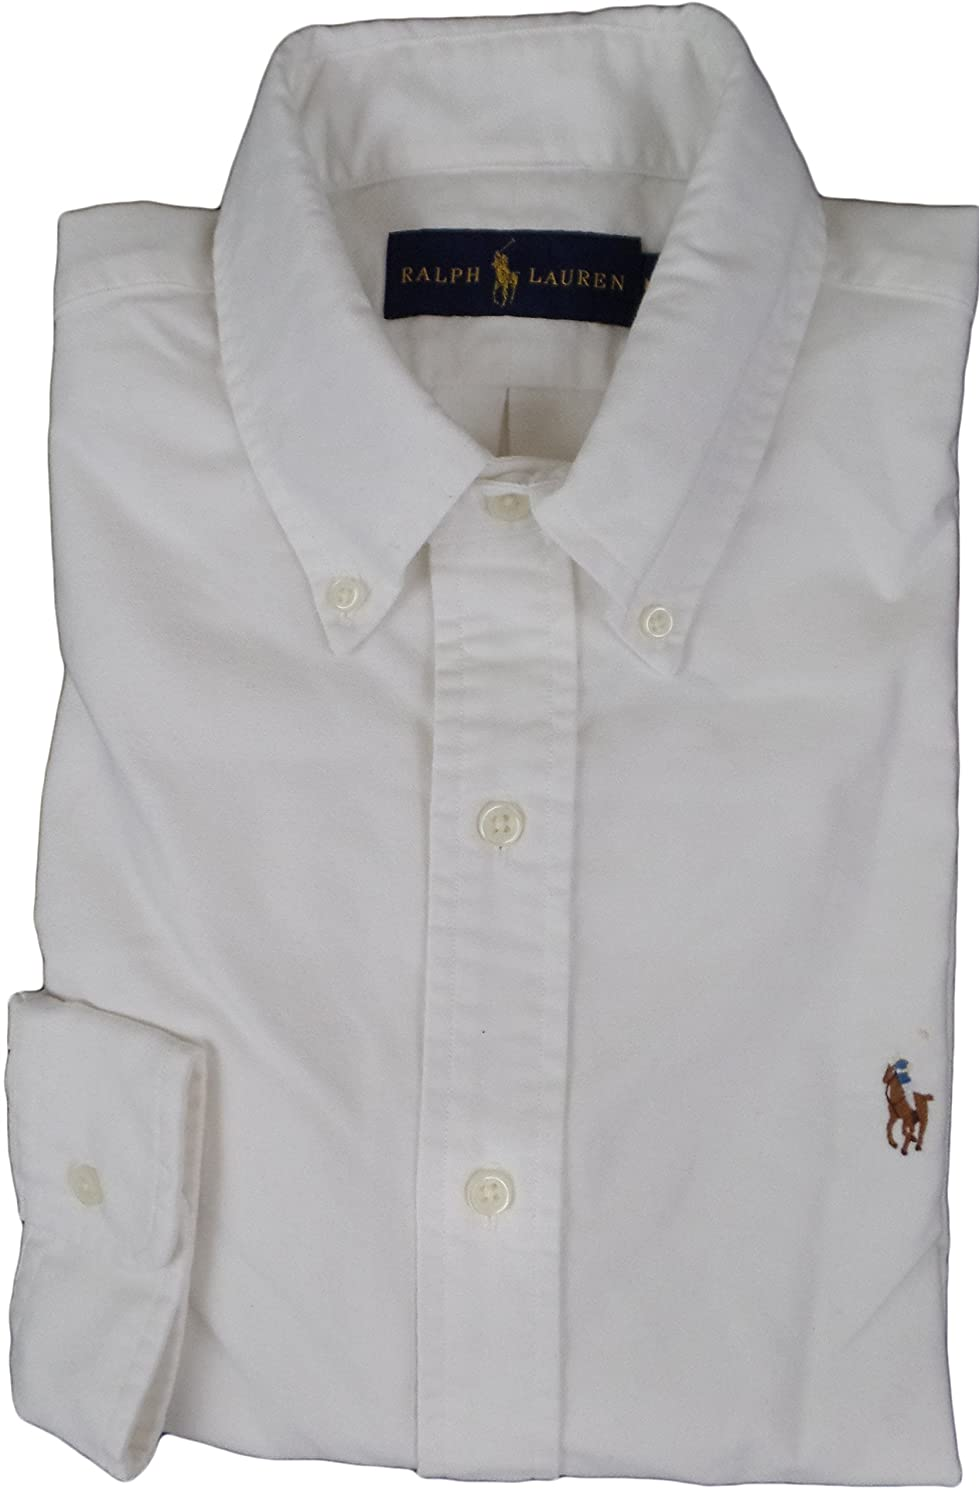 Polo Oxford White Lauren Shirt Medium Classic Ralph Men's 4S3q5cjRLA